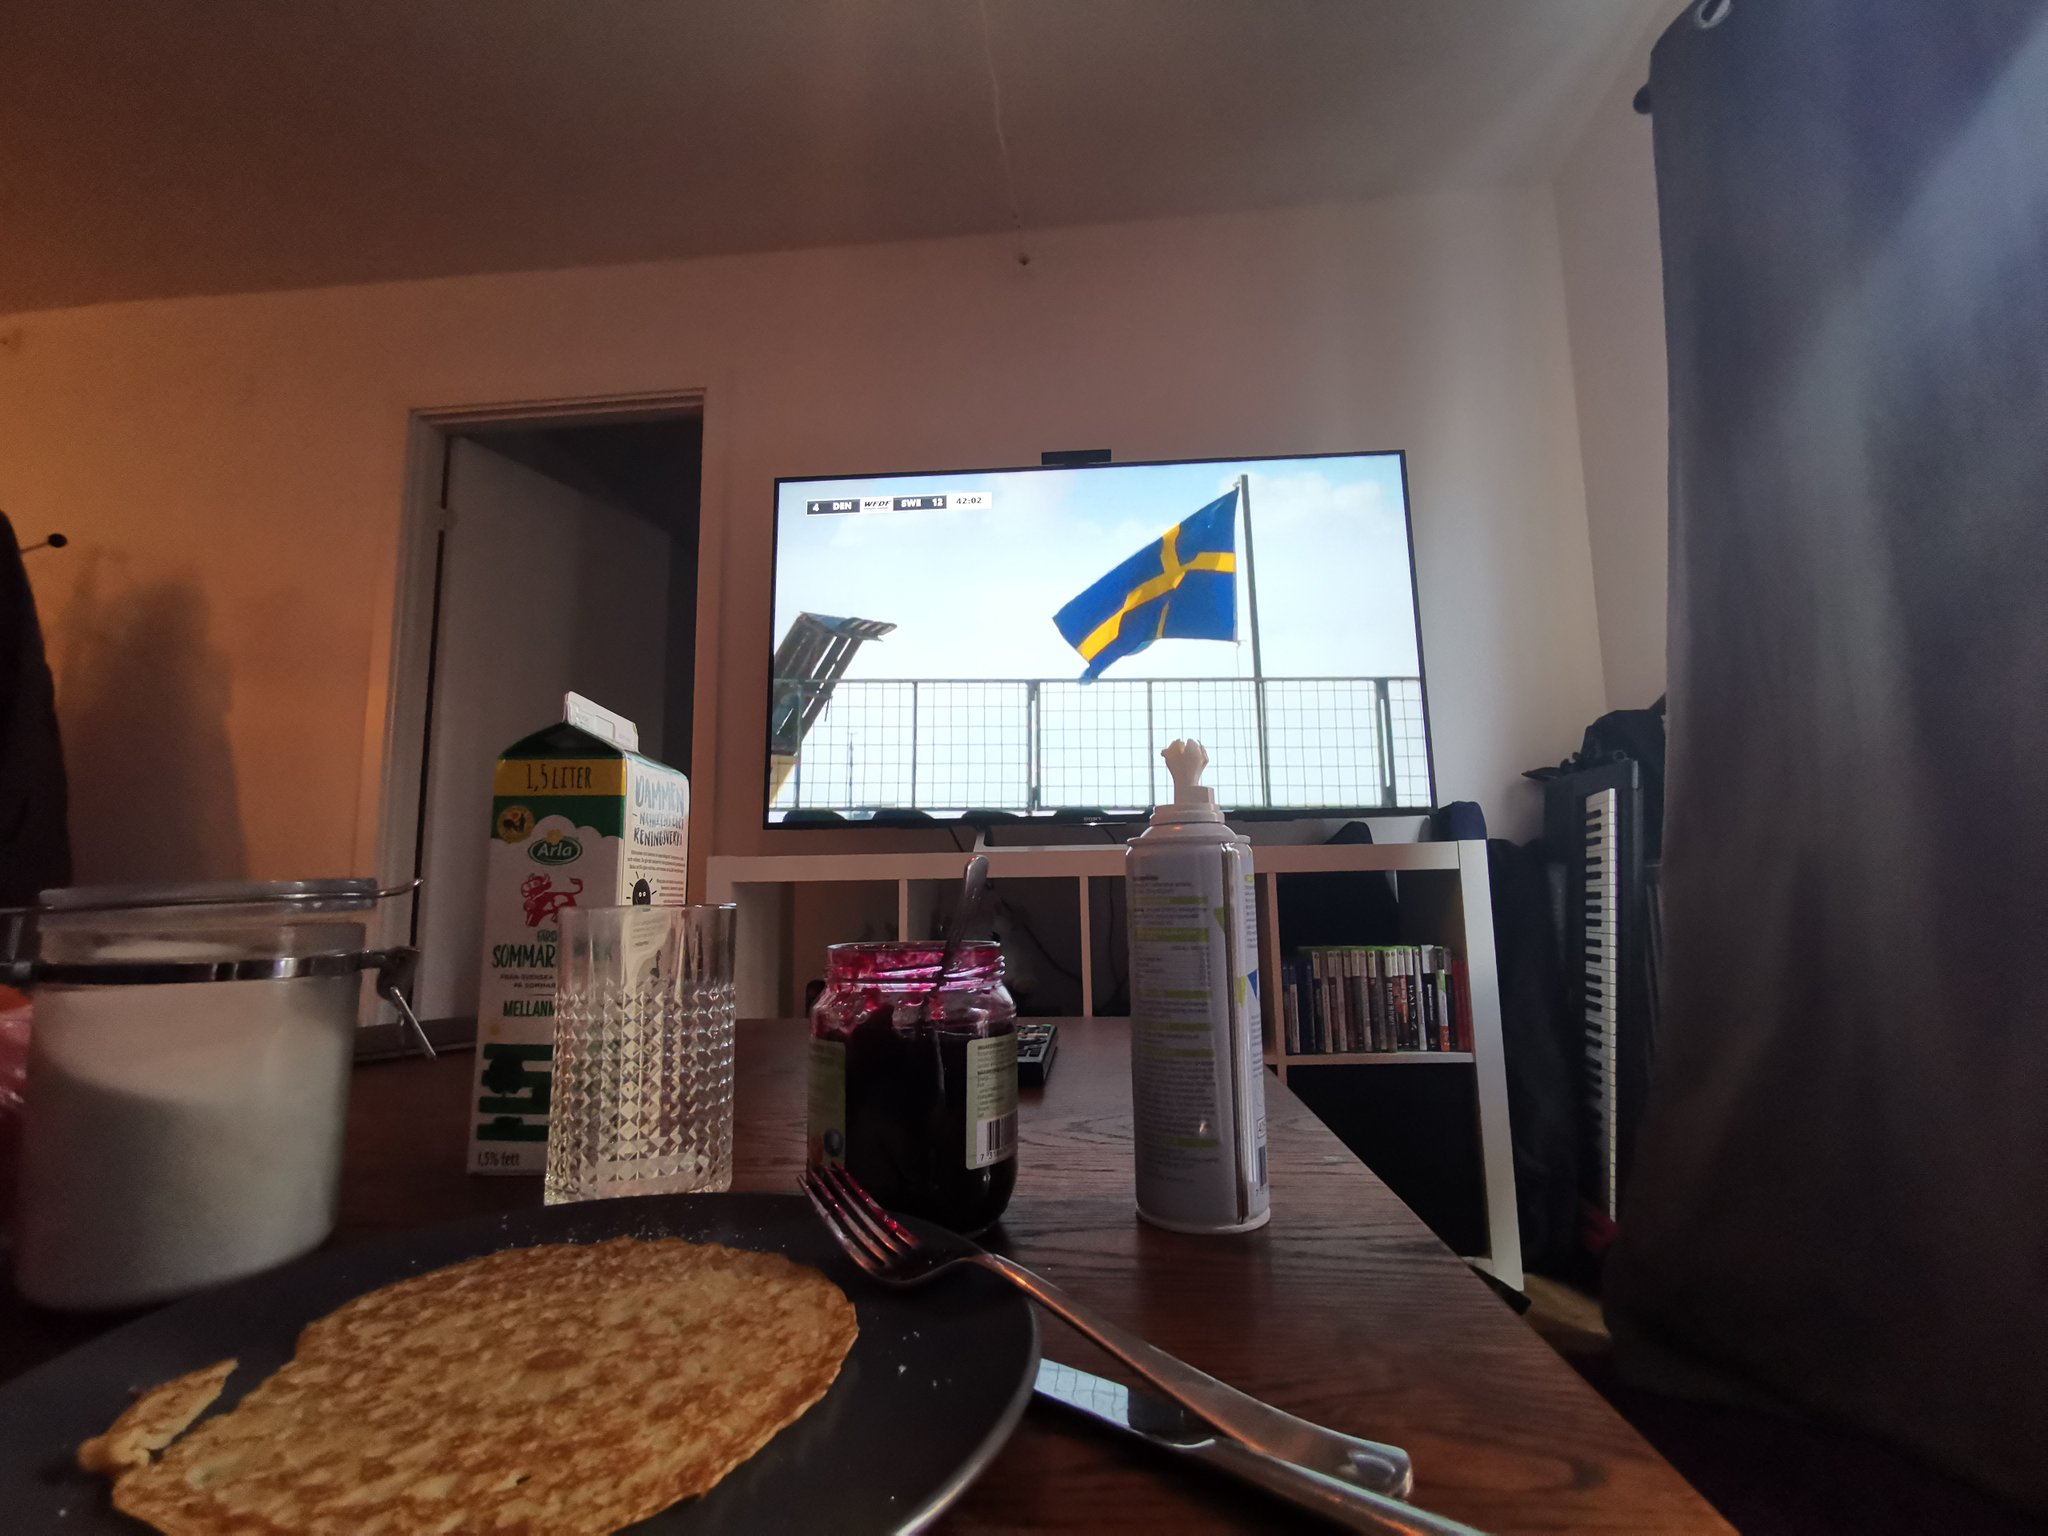 This is how I #EBUC2019  Go #swedenultimate!  @tomstyles @EBUC2019 https://t.co/ous124bqmk <a href='https://twitter.com/HenrikMontin/status/1126037367188533248/photo/1' target='_blank'>See original »</a>